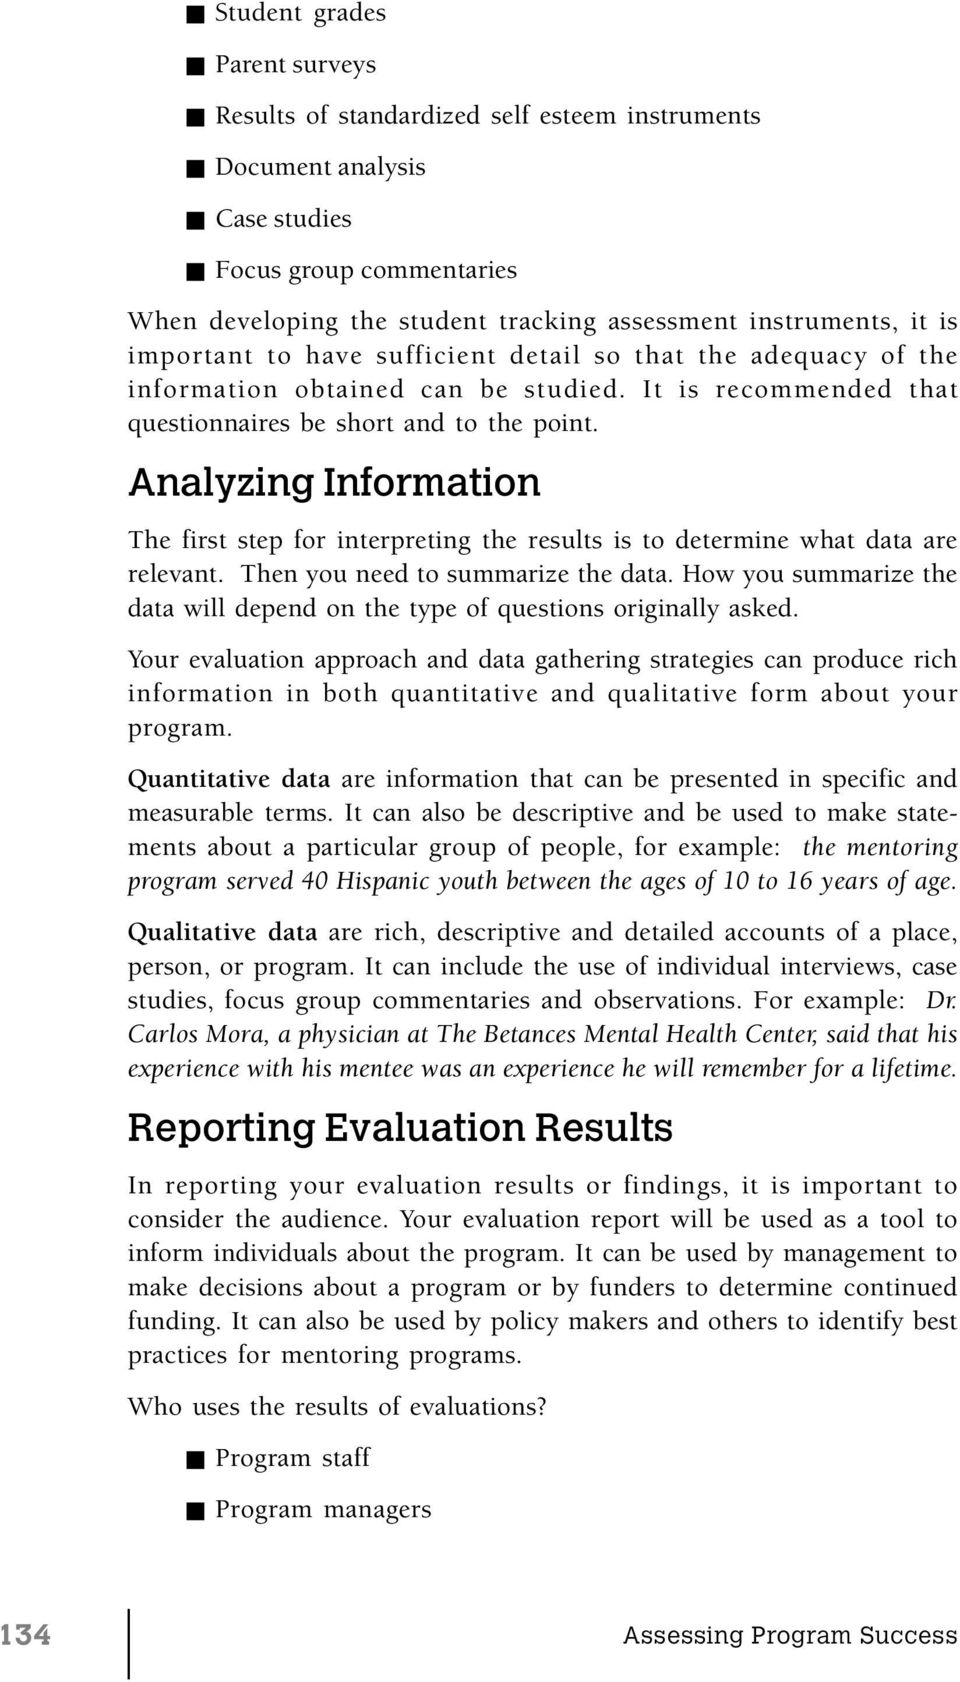 Analyzing Information The first step for interpreting the results is to determine what data are relevant. Then you need to summarize the data.